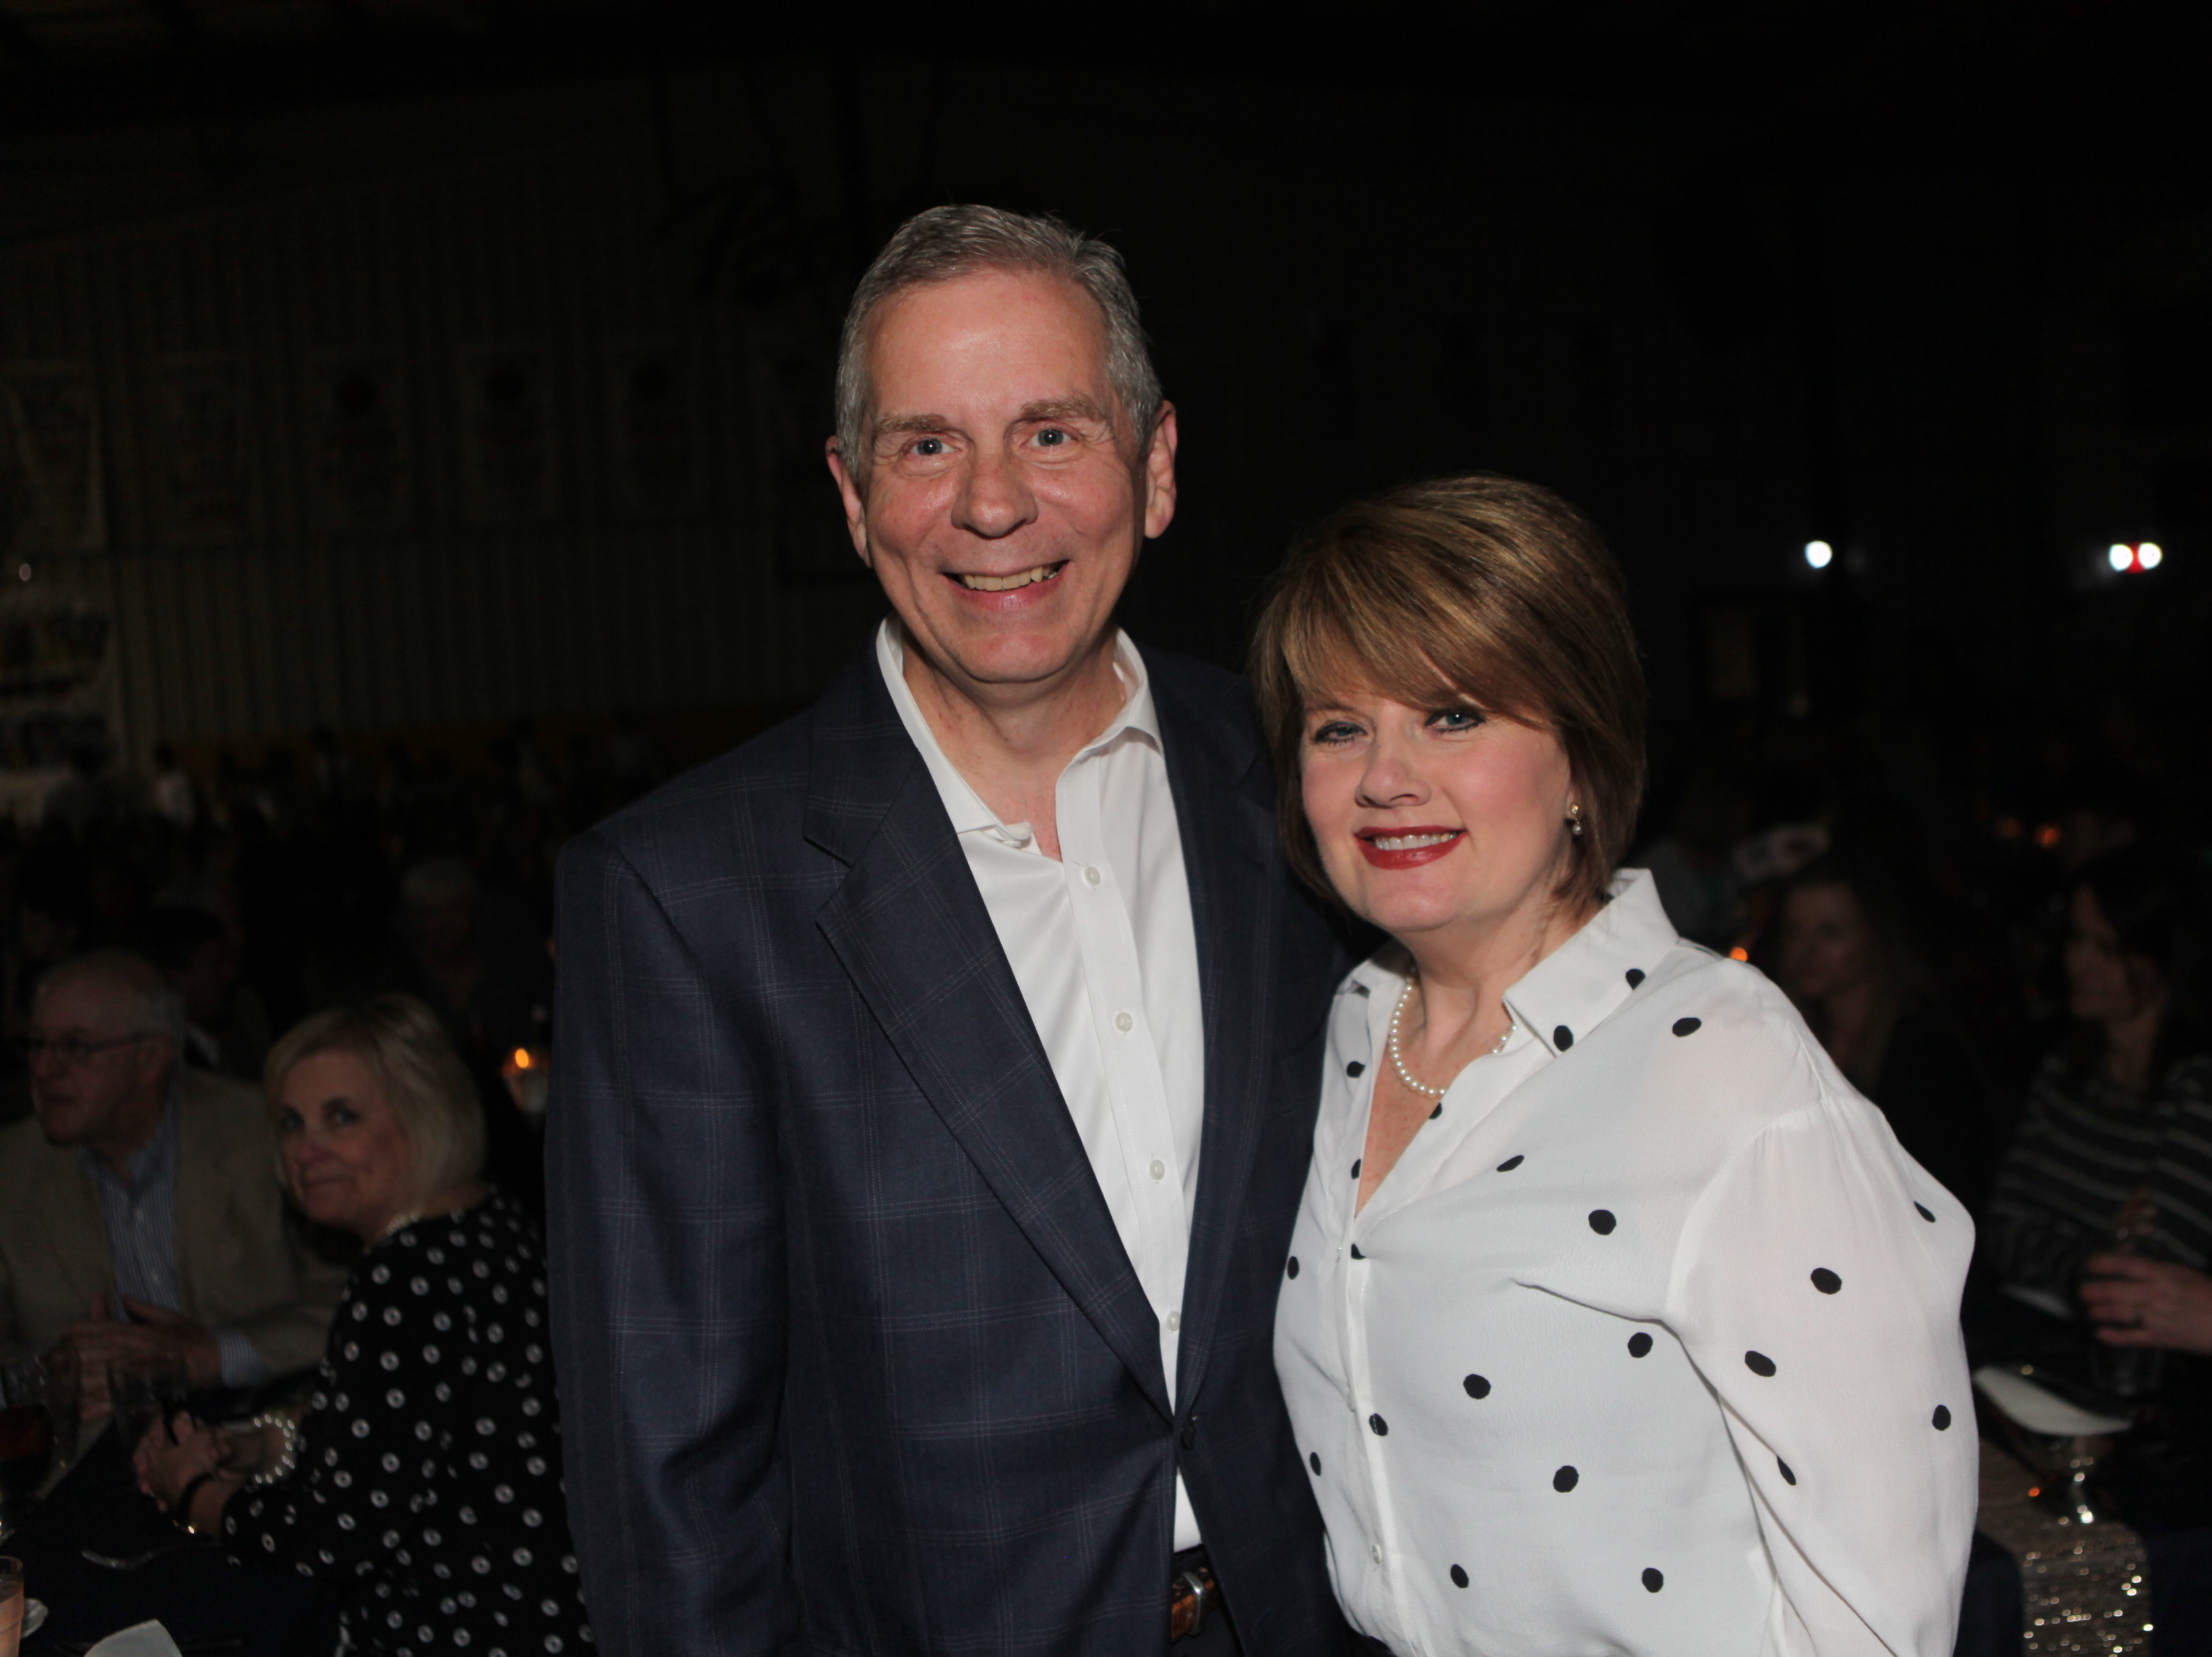 Mayor Joe Pitts and Cindy Pitts at Clarksville Academy's Steak Dinner on Saturday, April 13, 2019.